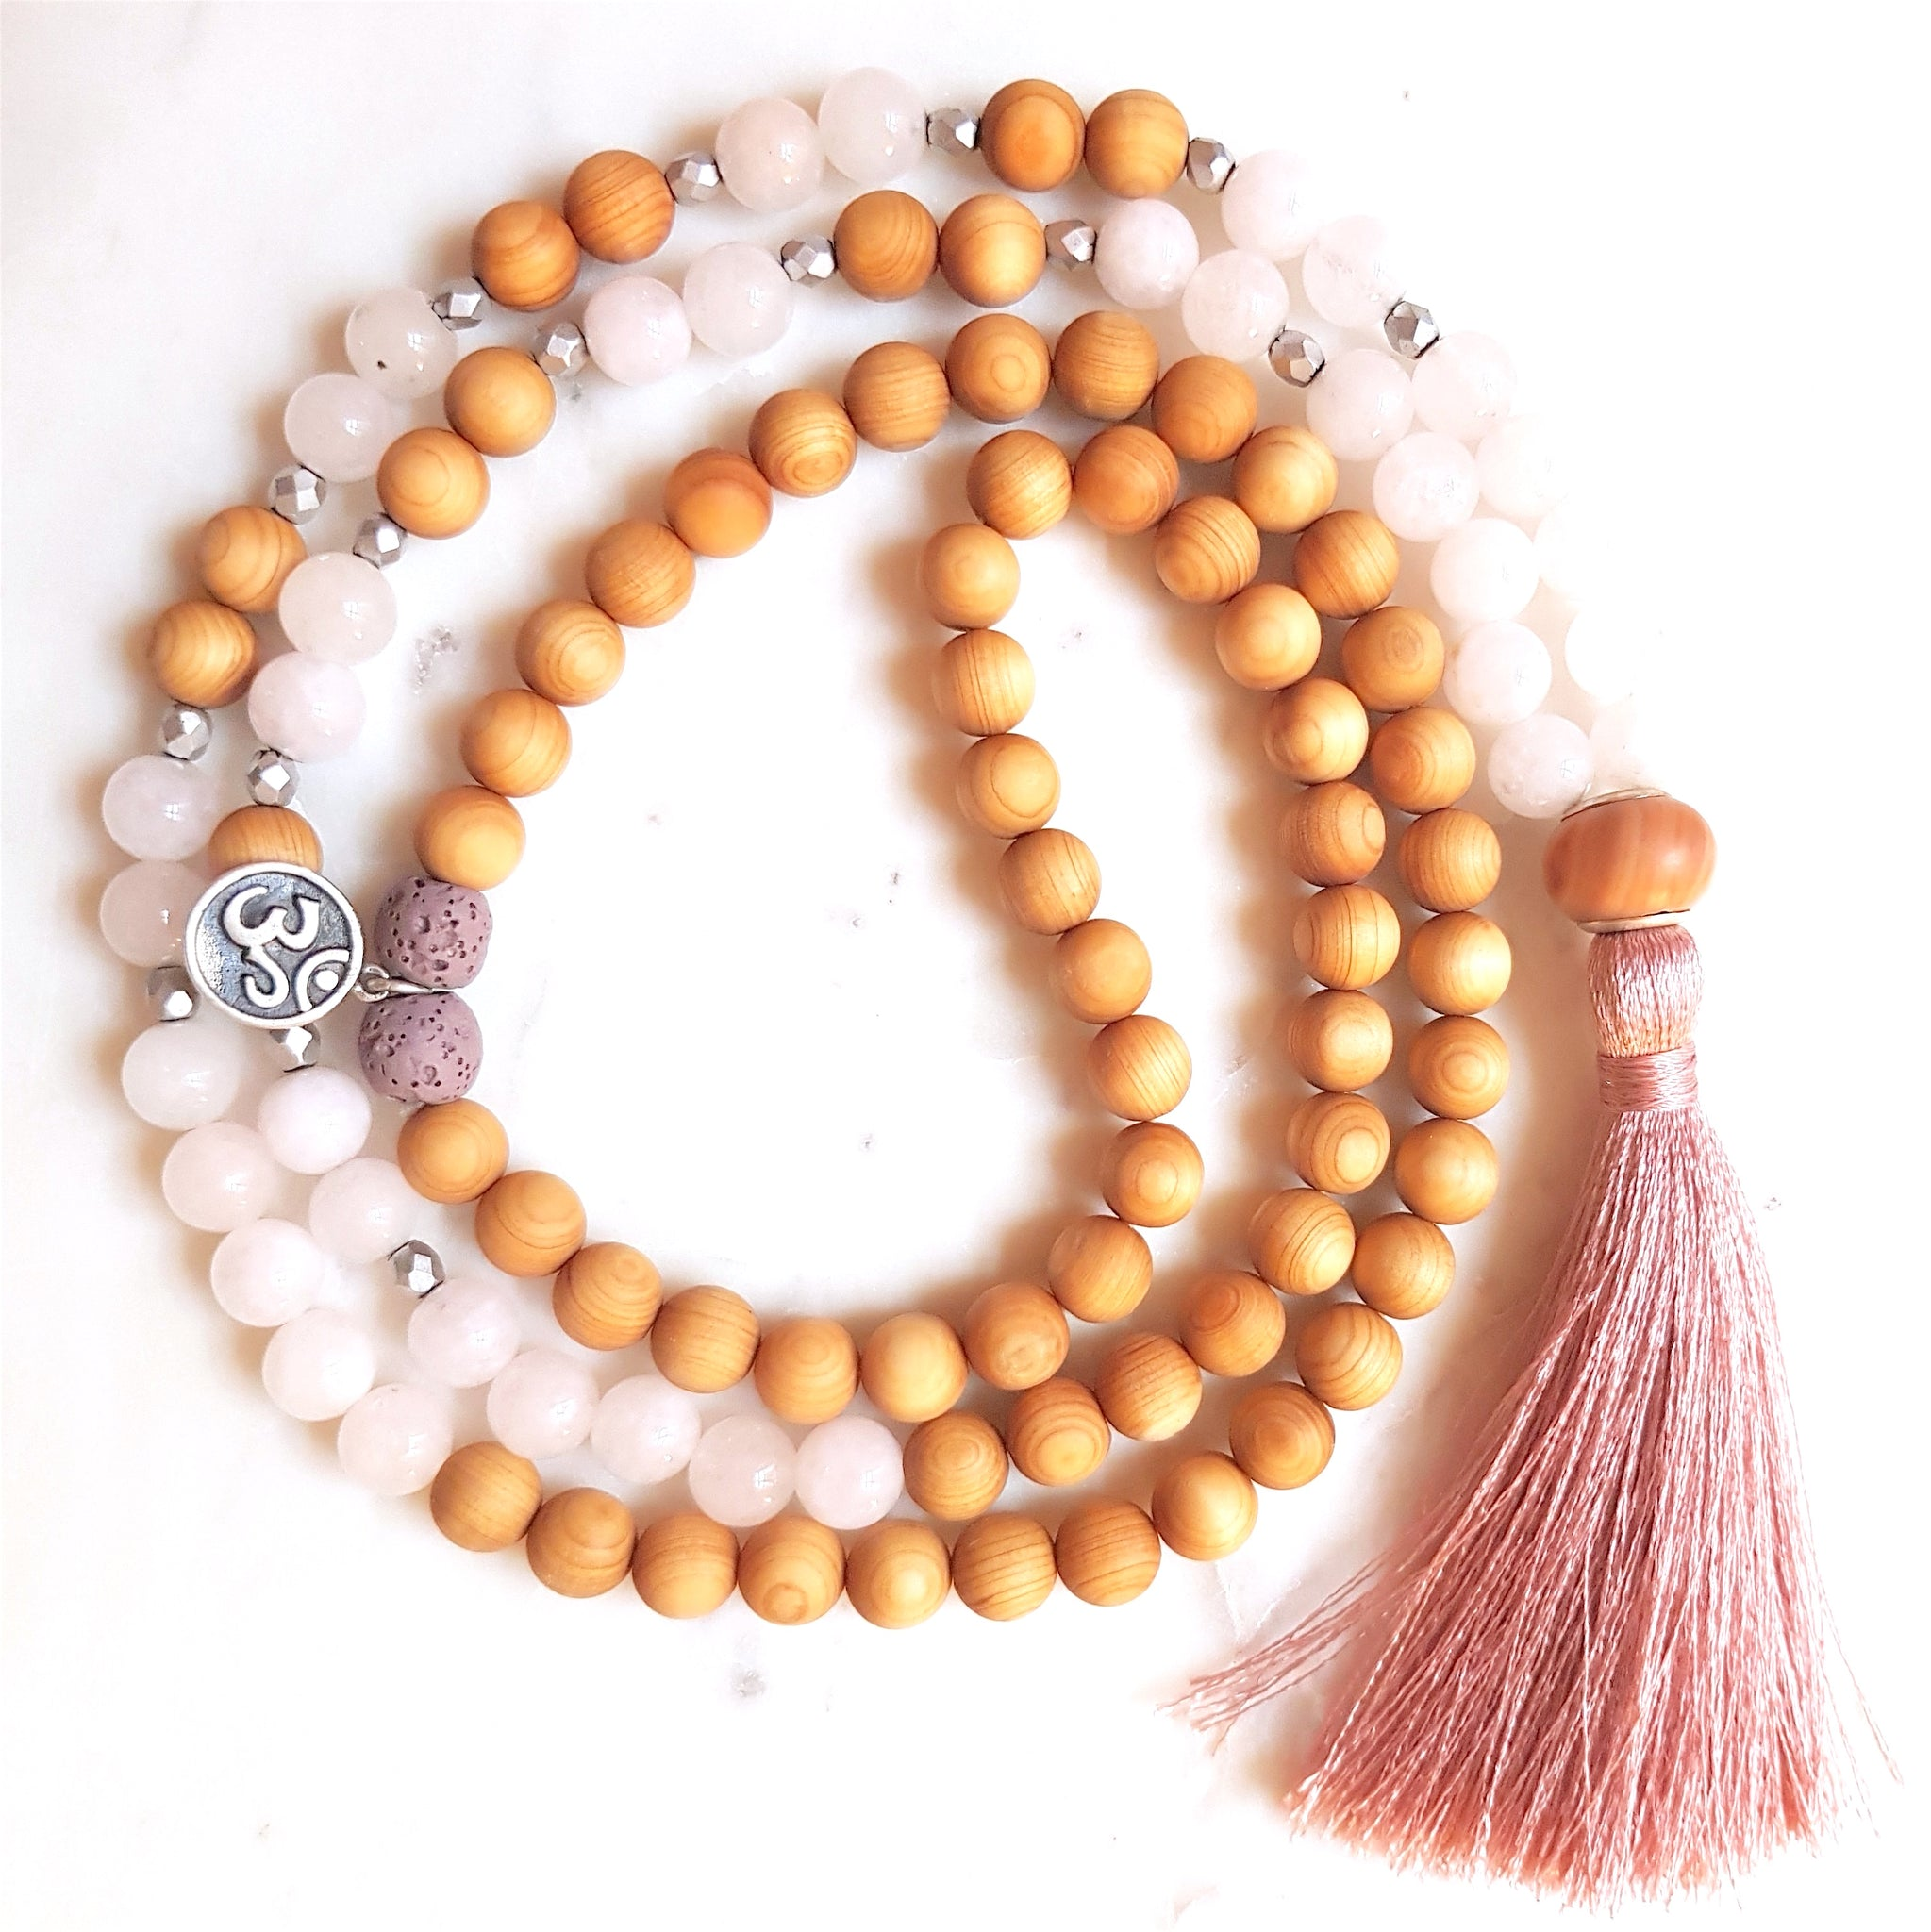 Aria Mala Atelier's unique one-of-a-kind sandal wood pink jade gemstone meditation japa mala with silver OM charm is for yoga meditation empowering spiritual daily practise and intention setting